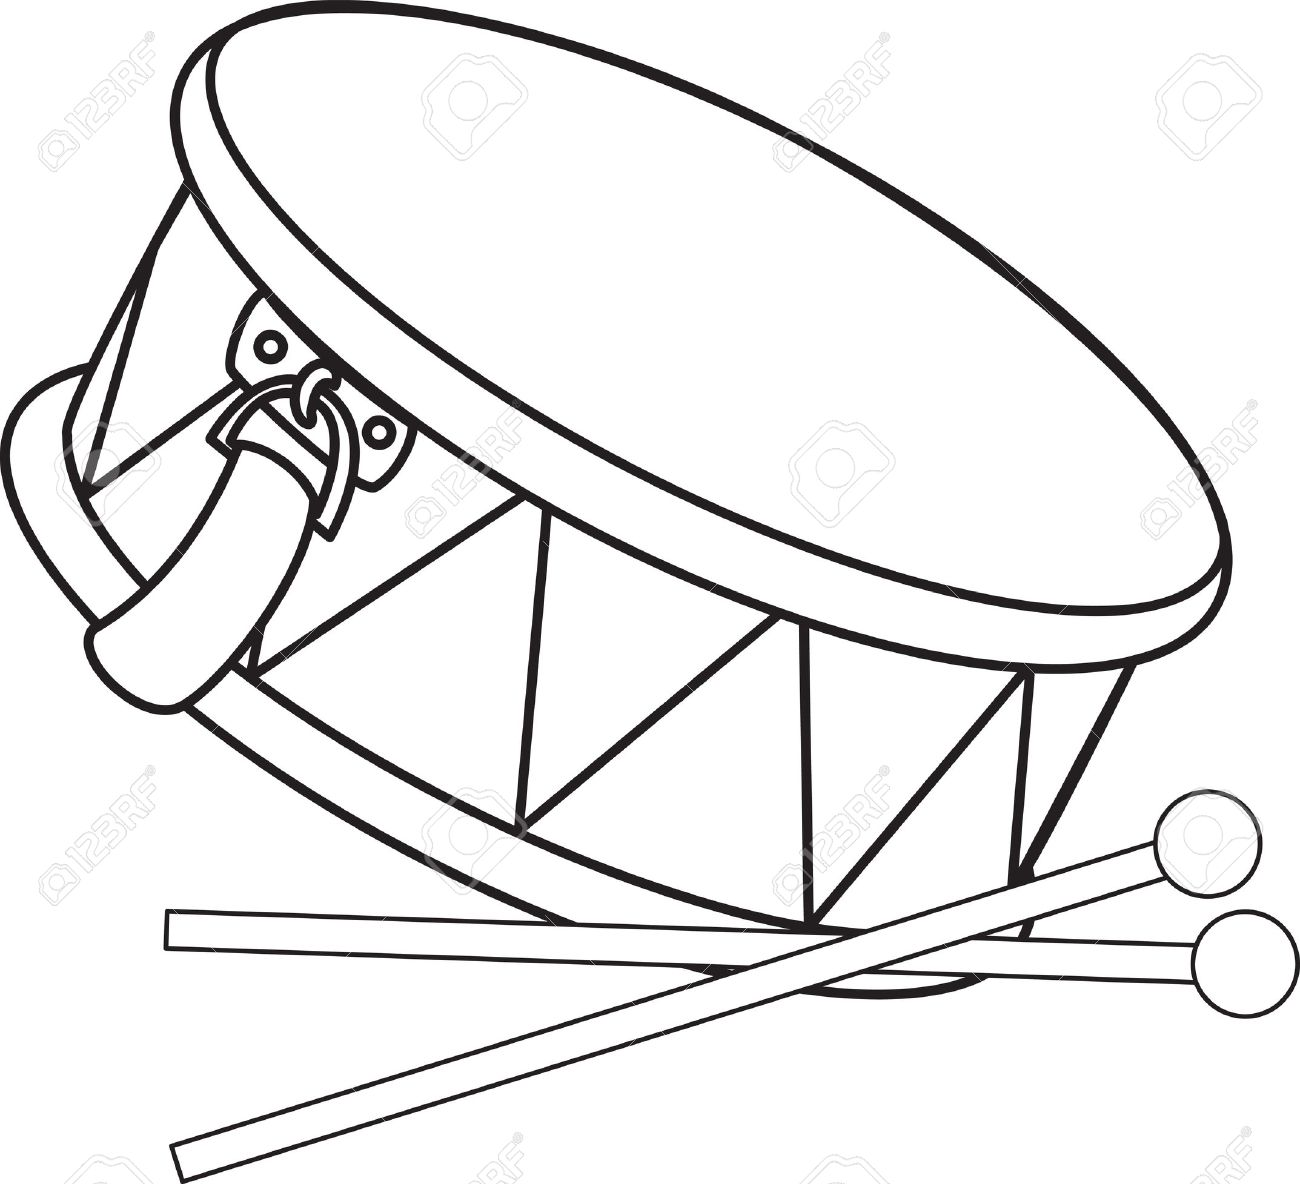 Coloring pictures drums - Toy Drum And Drumsticks Stock Vector 15462813